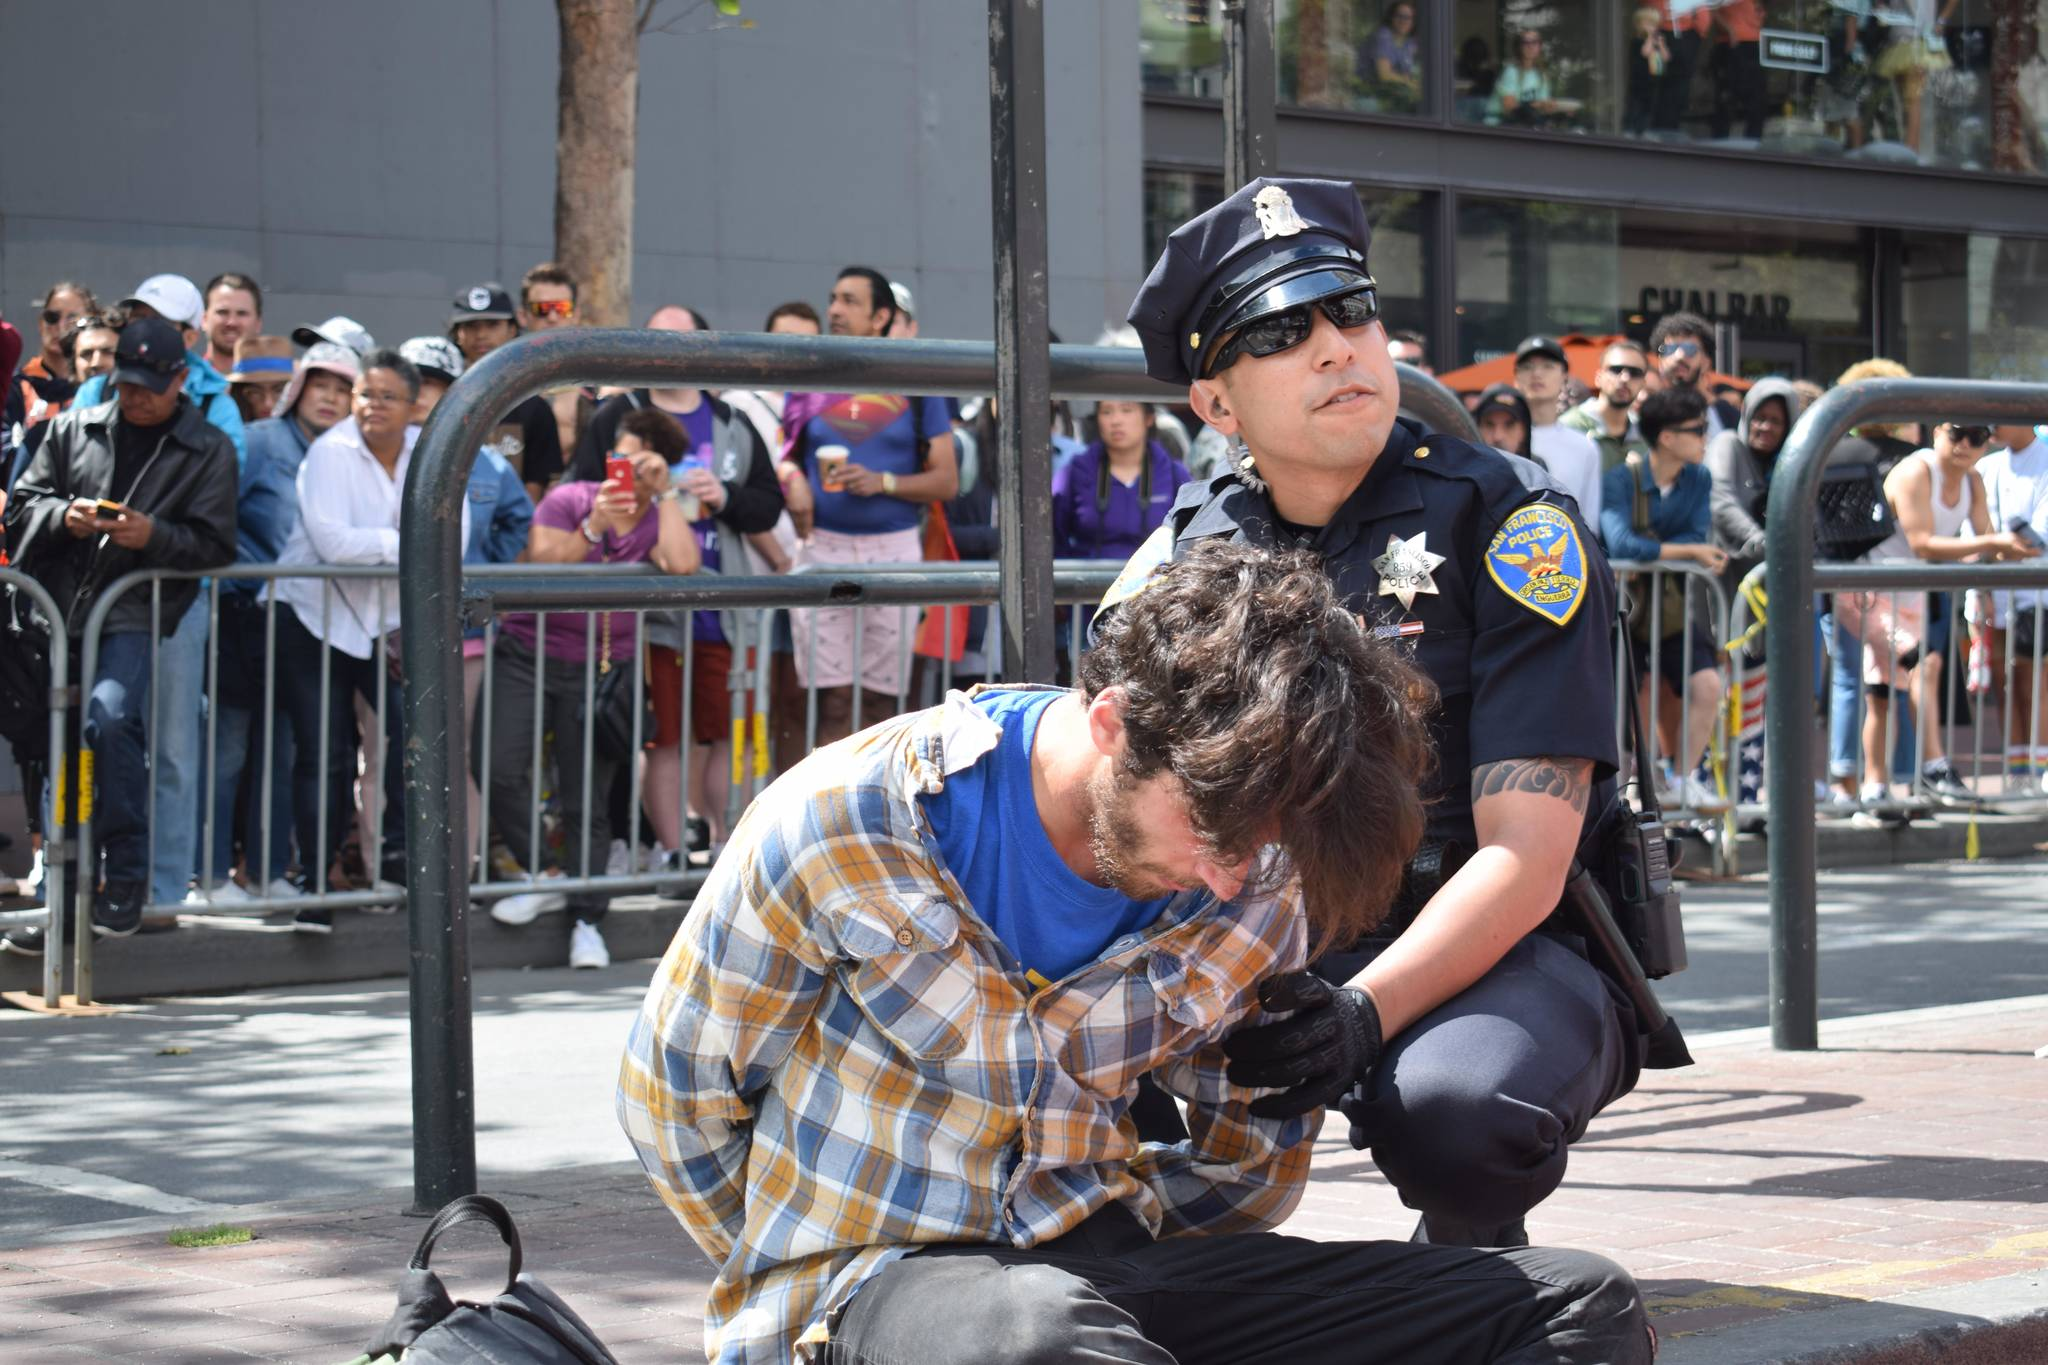 San Francisco Police hold a second handcuffed protester at the Powell Street BART station. (Théophile Larcher/ Special to S.F. Examiner)